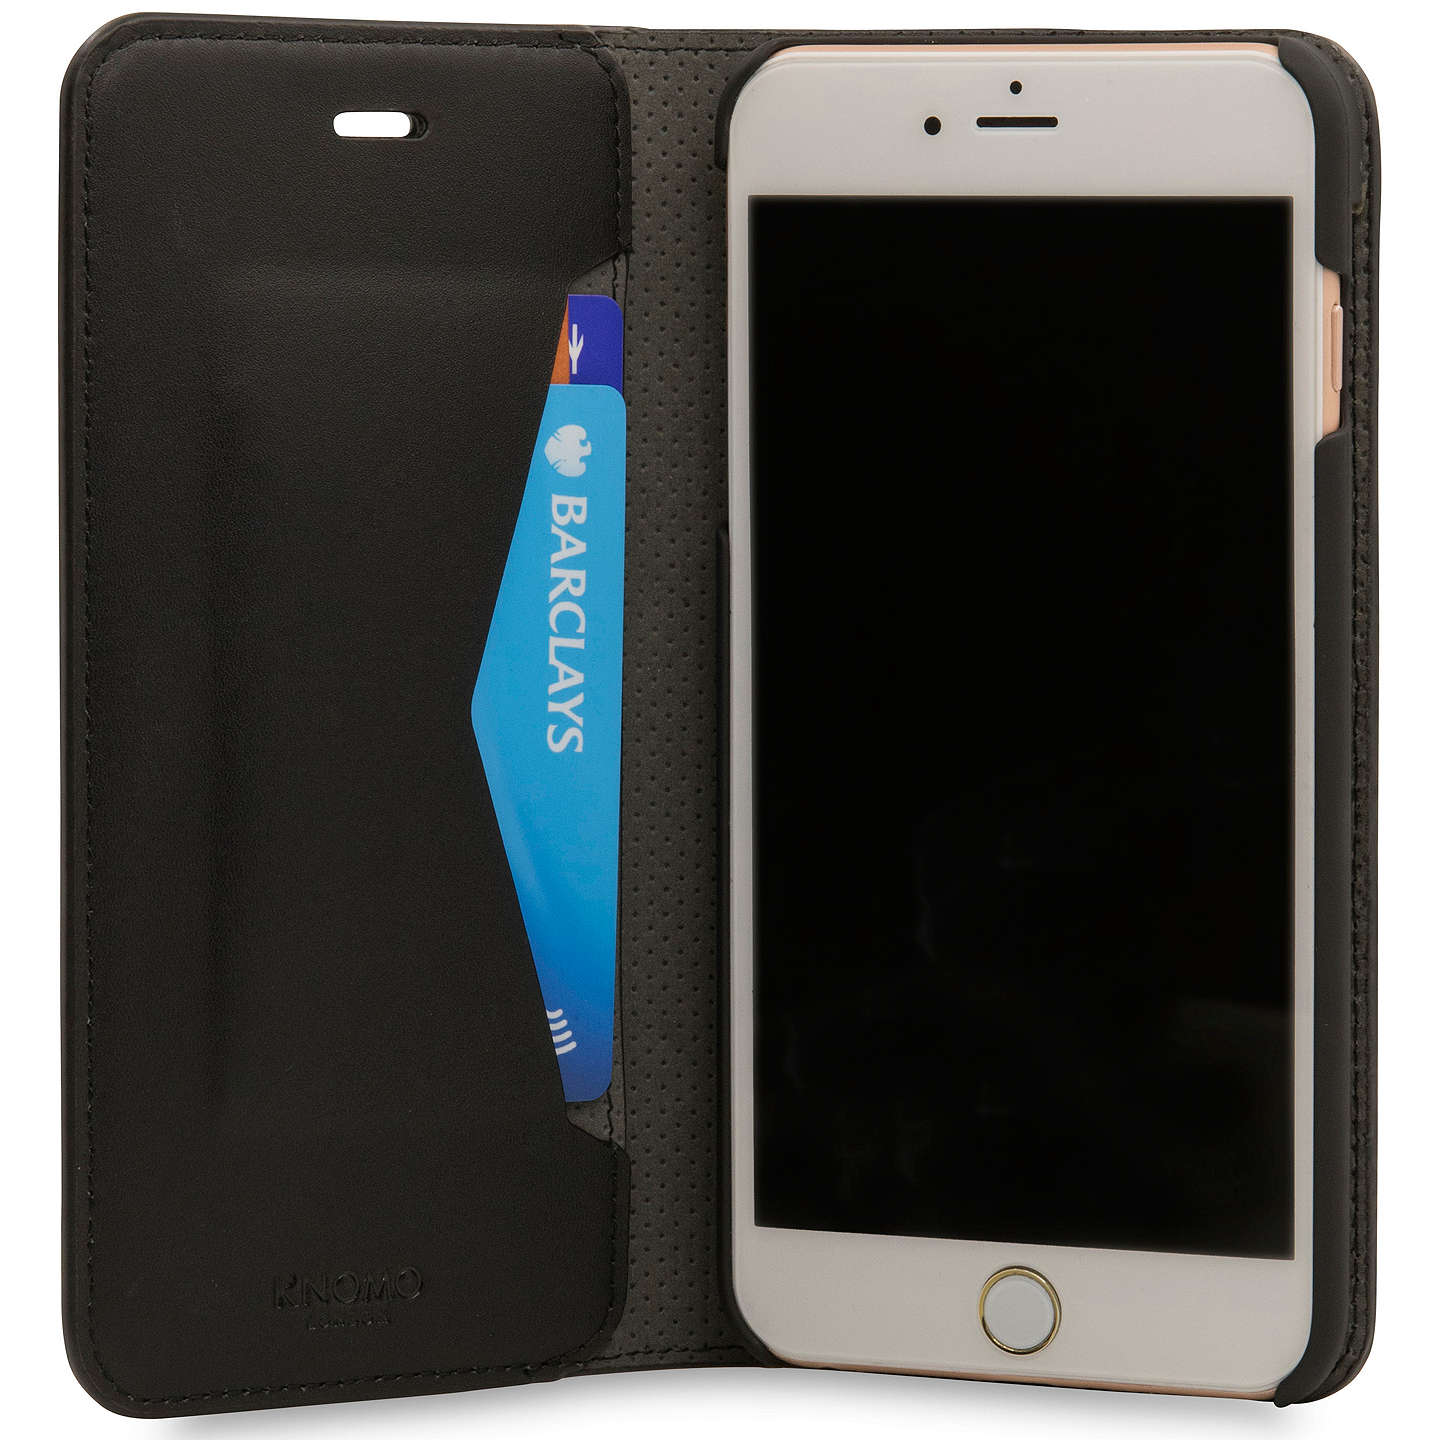 Touch Of Modern Iphone Case